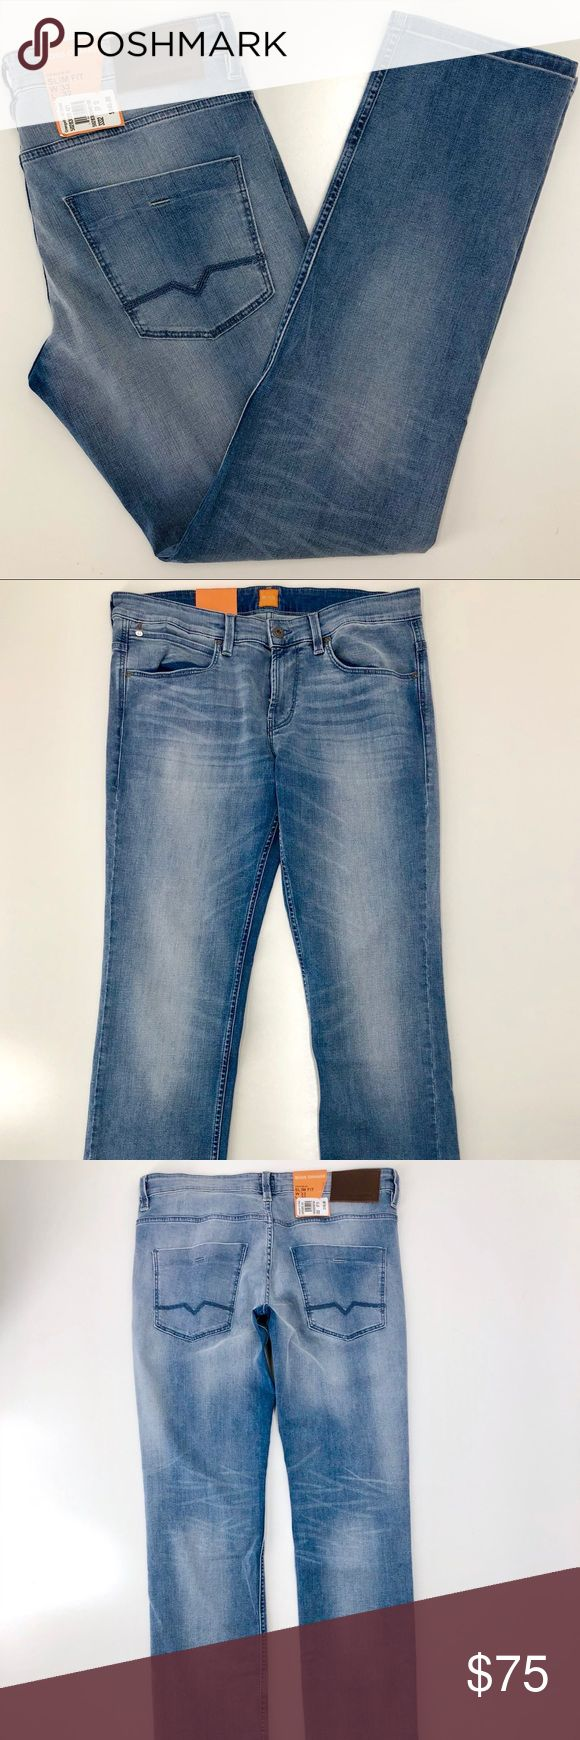 """Hugo Boss Orange 63 Jeans Mens 35W x 32L Slim Fit Hugo Boss Orange 63 Jeans Mens 35x32 Slim Fit. Distressed light blue Denim. Tag SAYS 33x32 BUT as you can see from the measurements, the waist is actually 35"""". See photographs for details! Hugo Boss Jeans Slim Straight #mensjeansslim"""